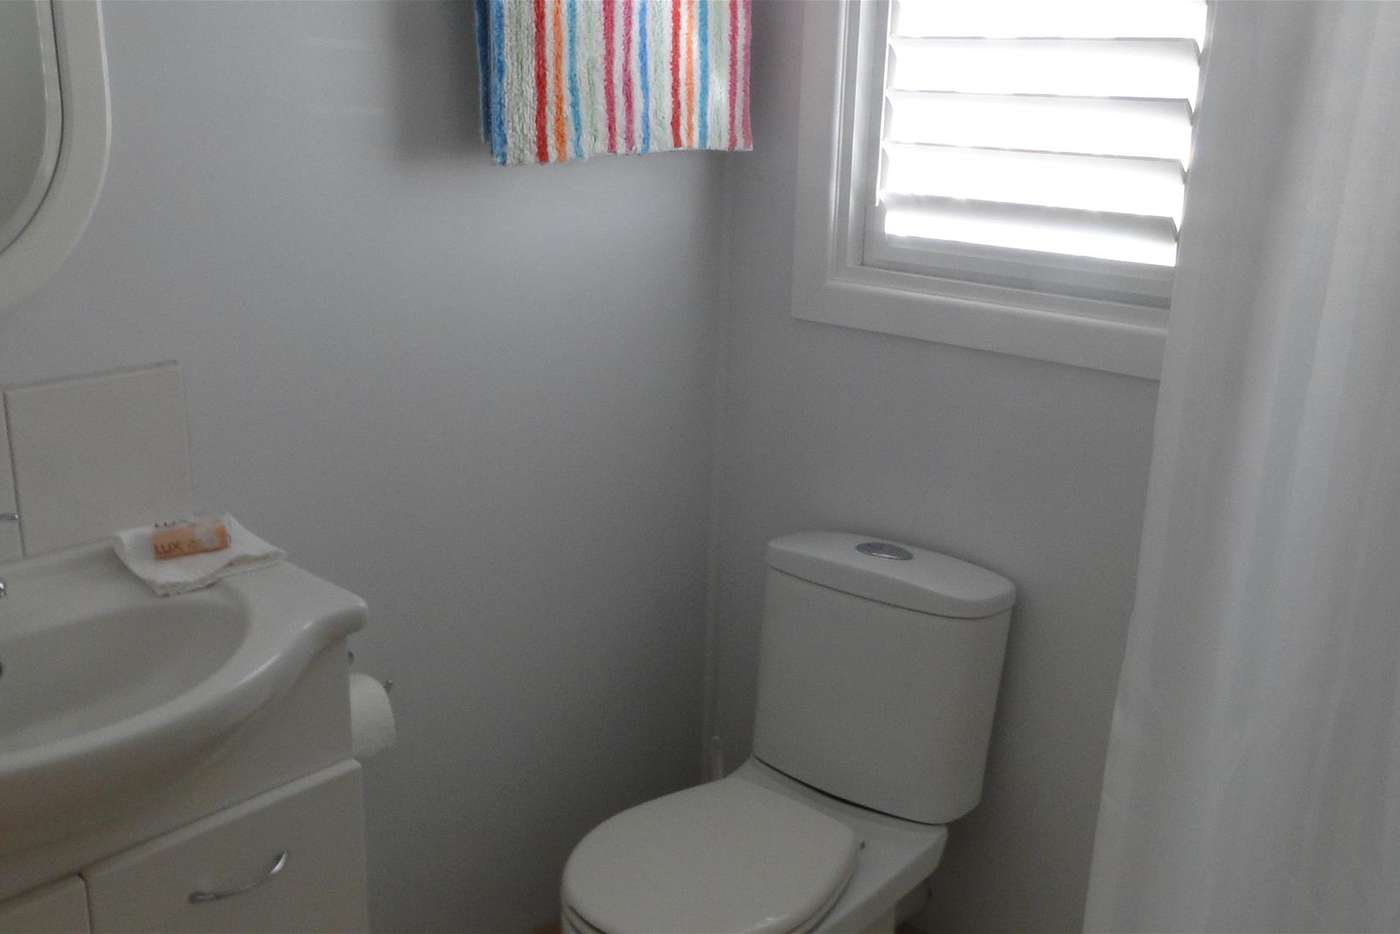 Sixth view of Homely house listing, 35 Boyce Street, Margate QLD 4019